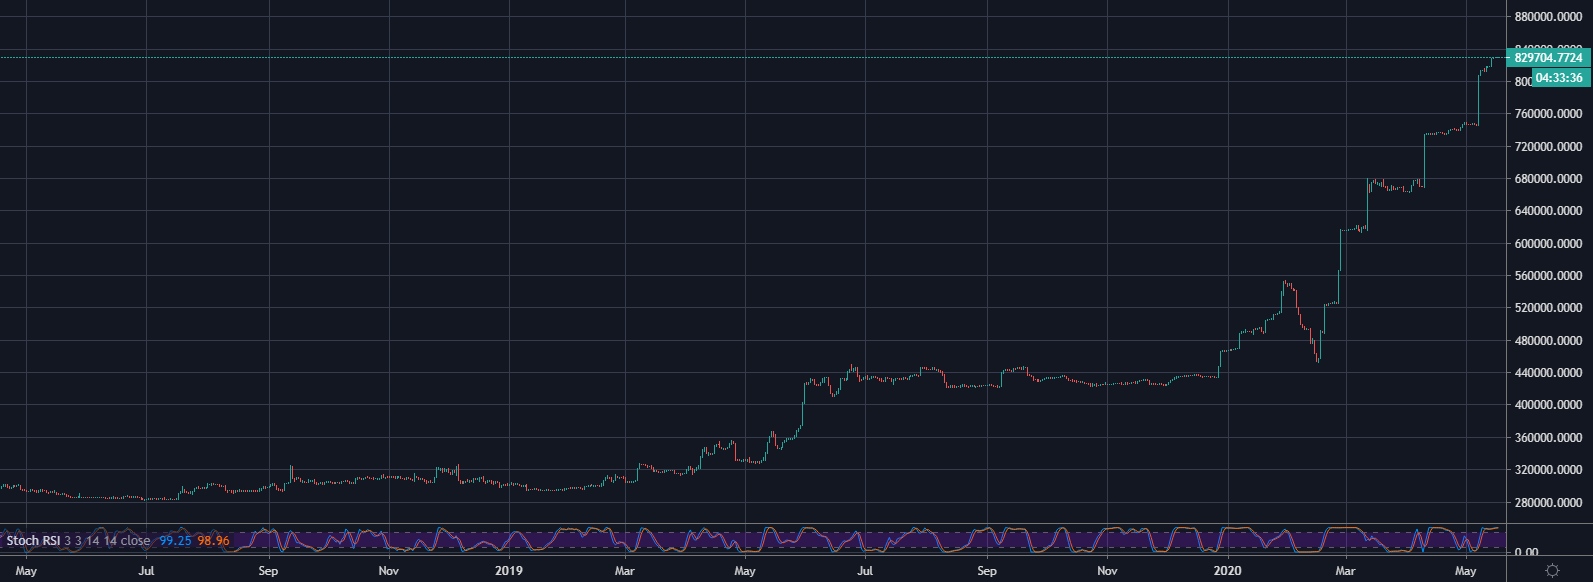 Bitfinex ETH/BTC Longs 1D May 2019 - May 2020: TradingView​​​​​​​